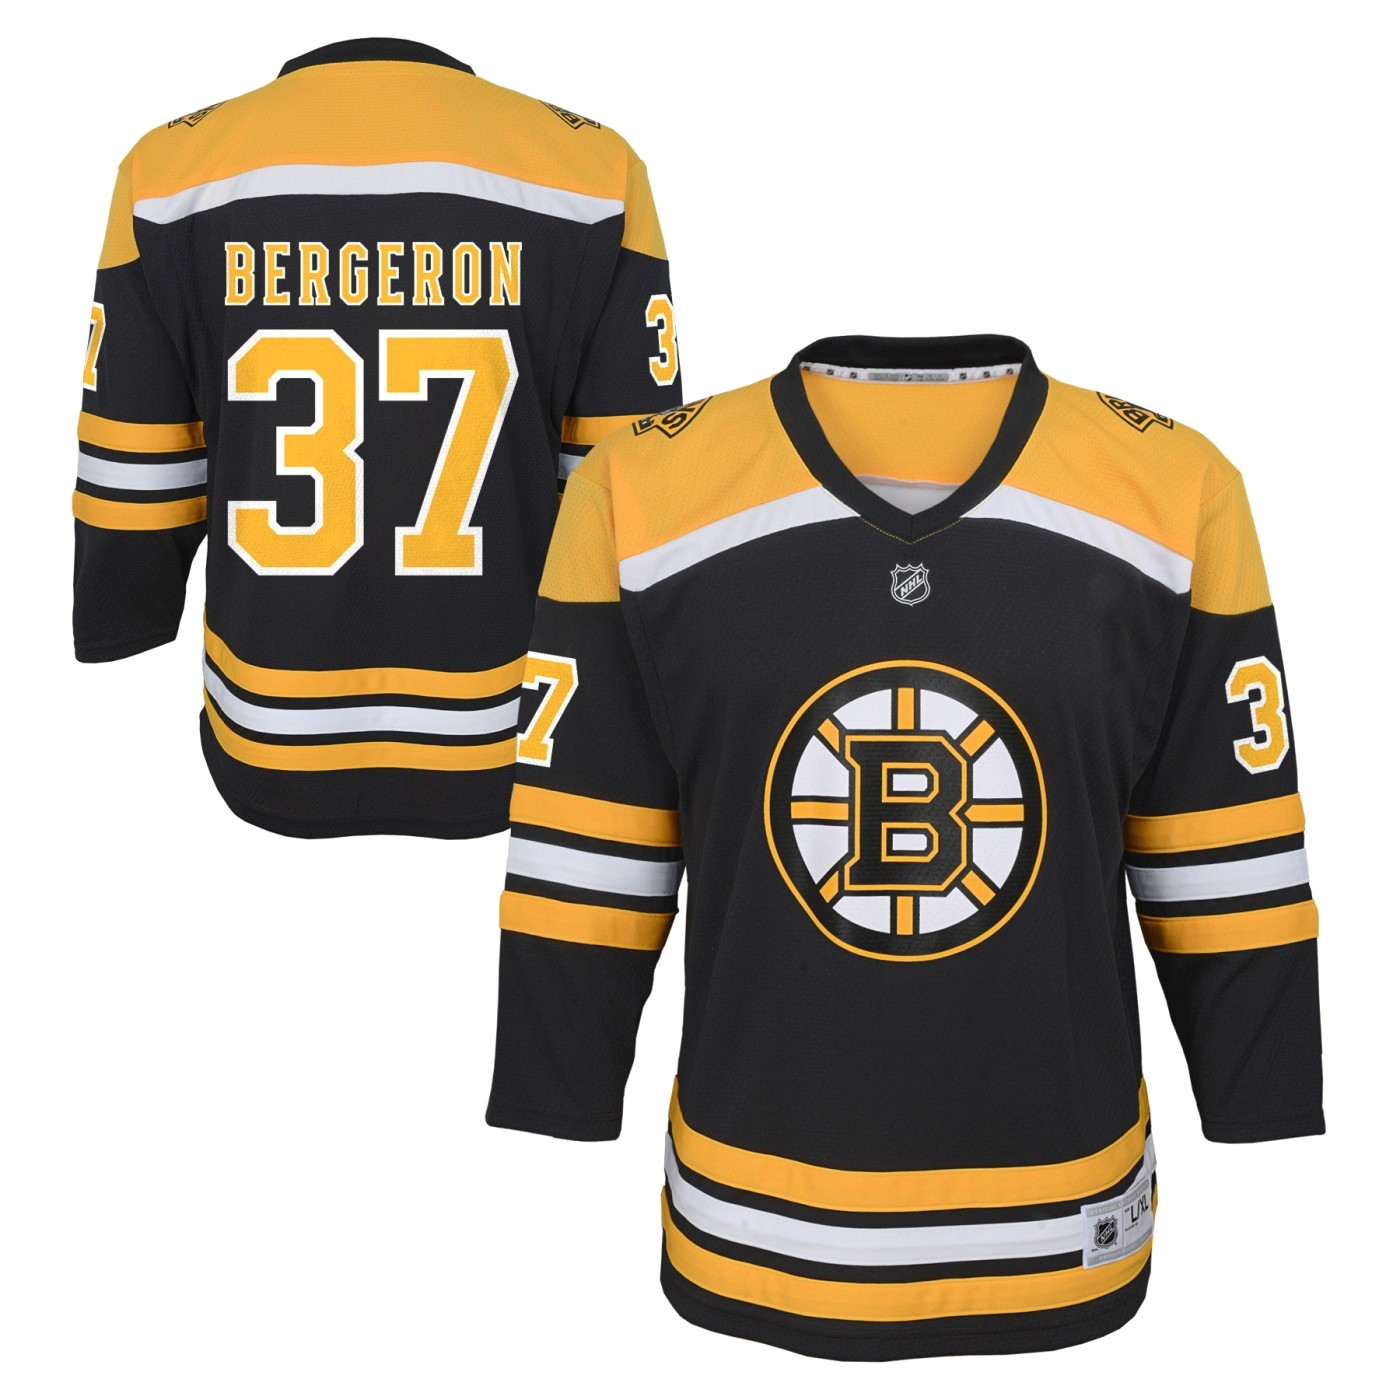 Patrice Bergeron Boston Bruins Youth NHL Black Replica Hockey Jersey by Outerstuff